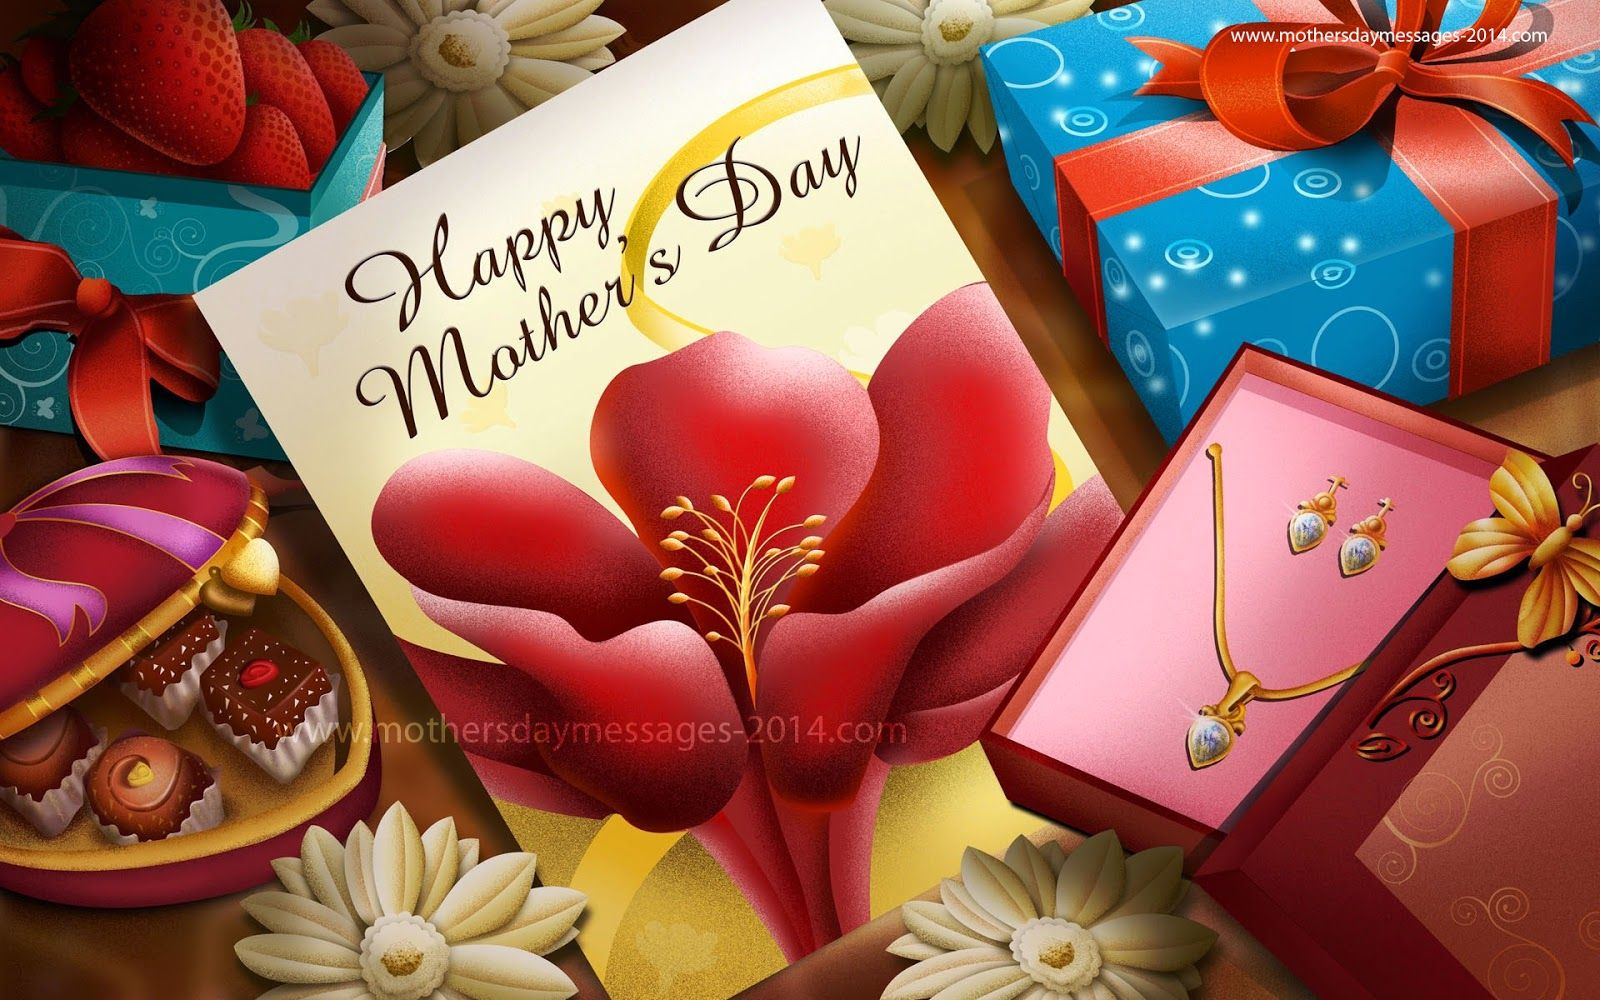 Happy Mothers Day Hd Wallpaper Images For Free Download In English